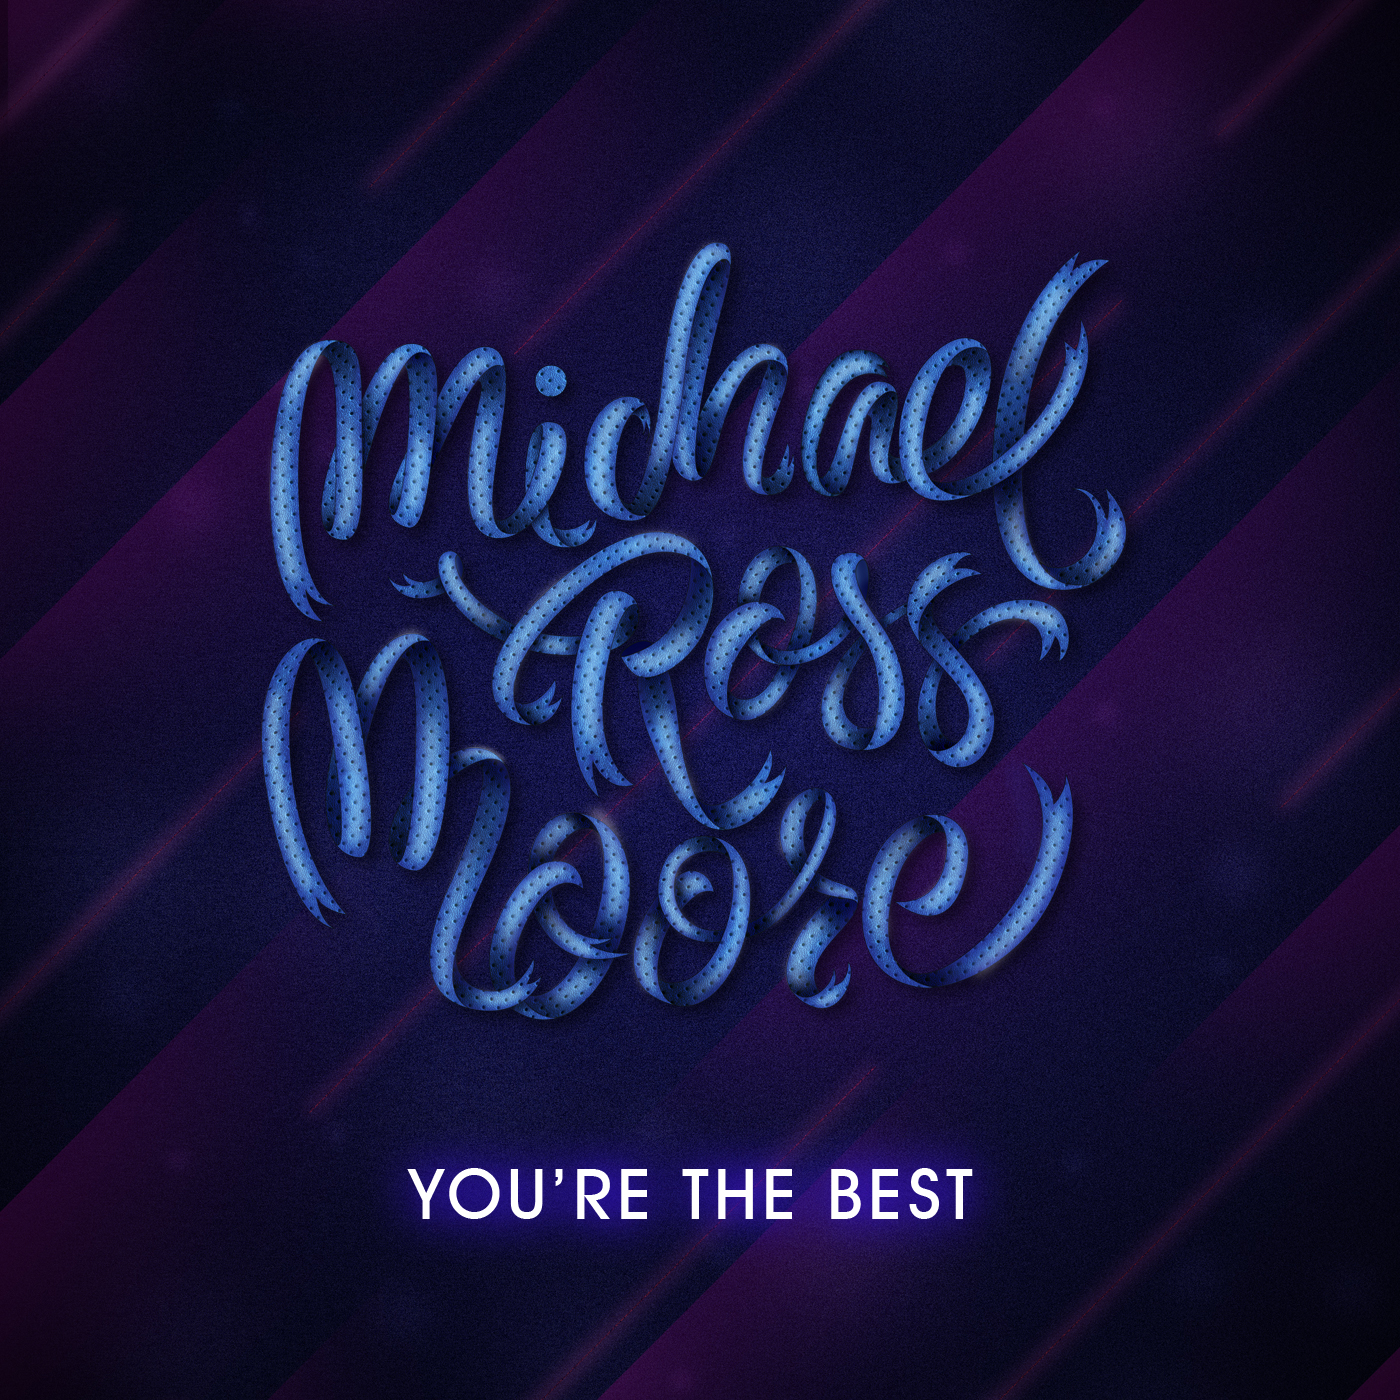 Caratula - You Are The Best (Michael Ross Moore) - 1400px _ VERSION 2